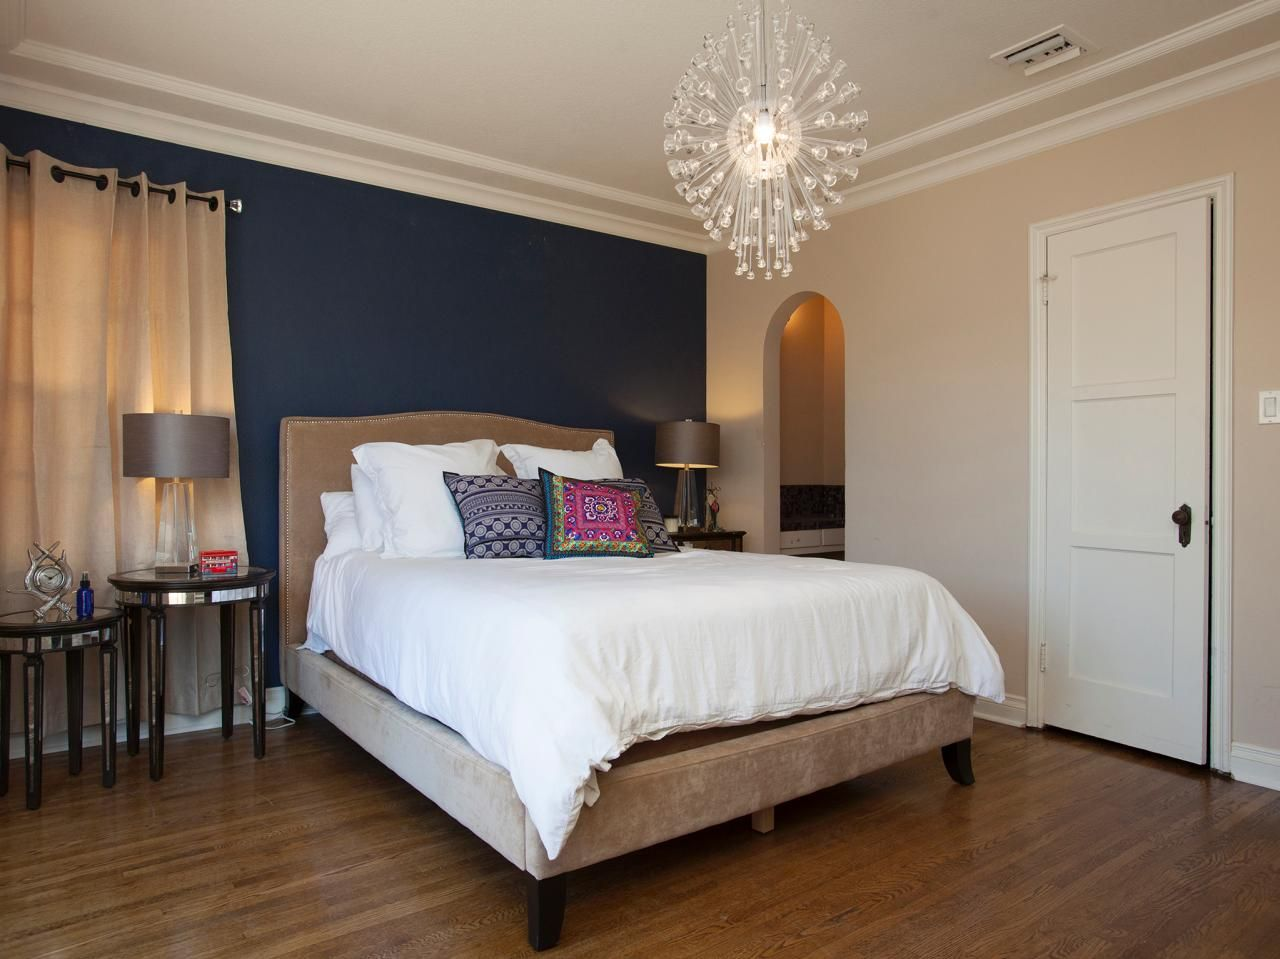 25 Amazing Room Makeovers From HGTVs House Hunters